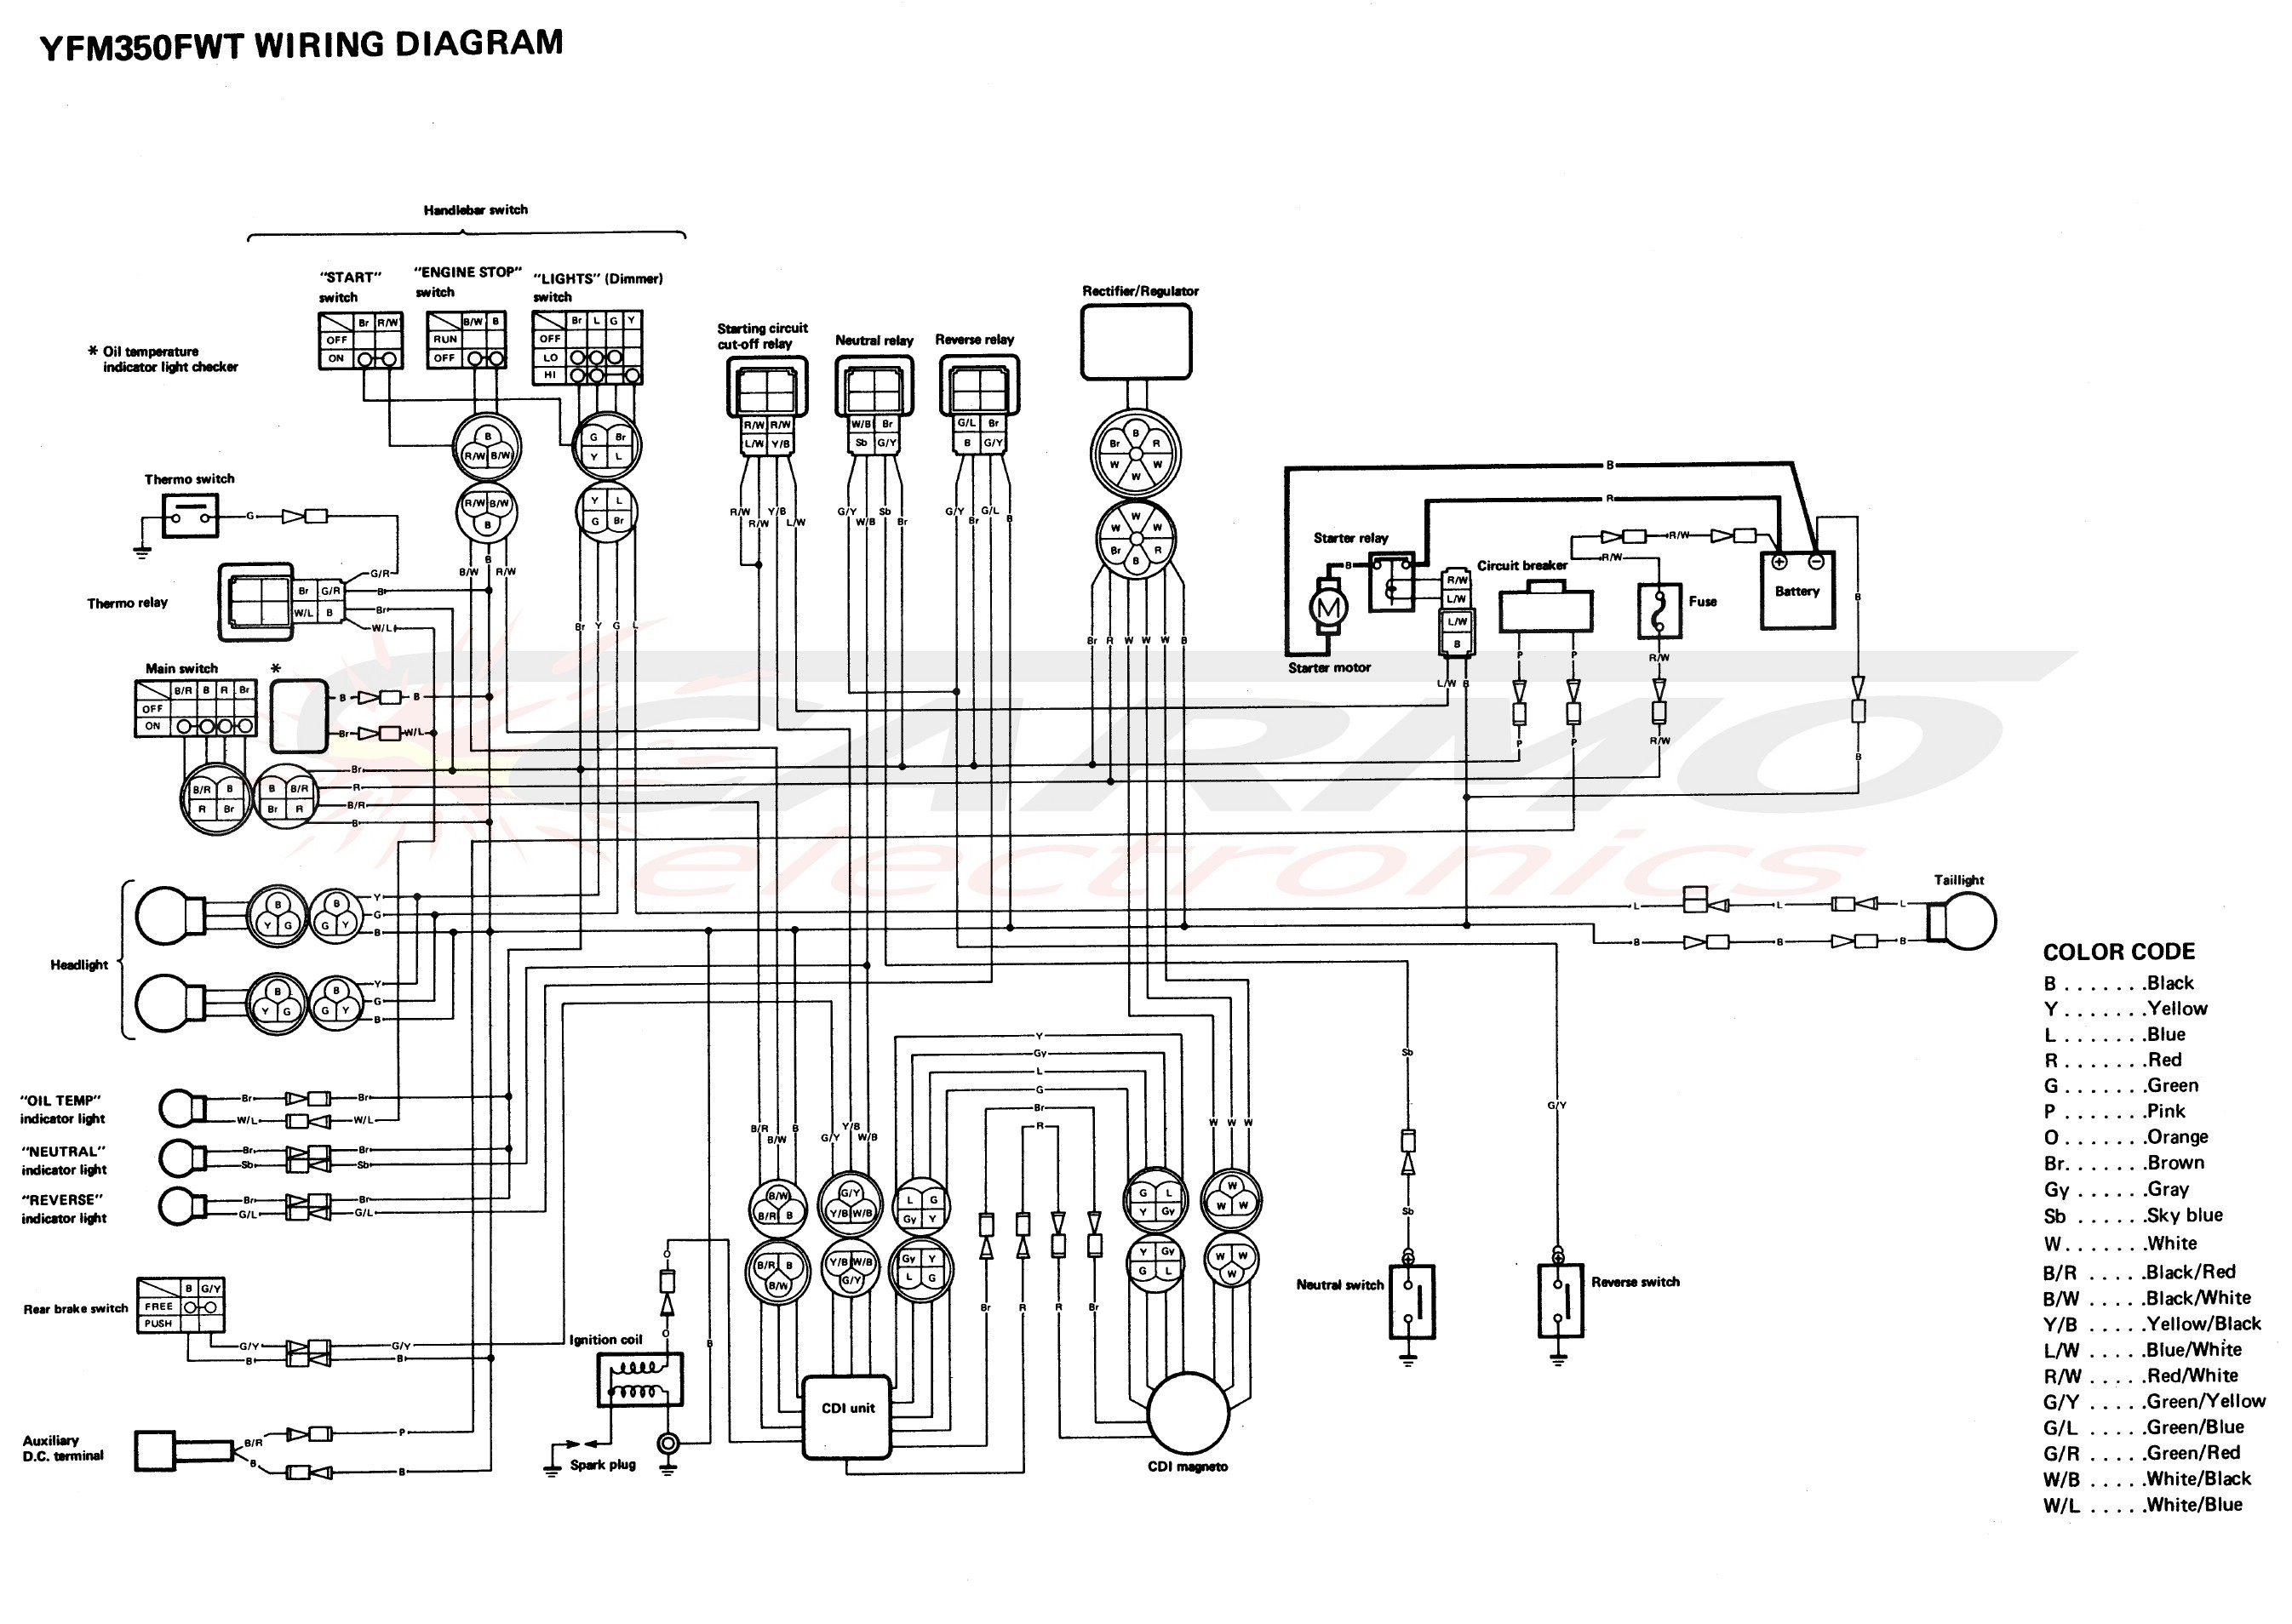 Yamama Moto4 YFM350FWT wiring diagram cdi igniton unit yamaha yfm350 big bear moto4 cdi (1yw 20) [carmo cdi set yfm350 wiring diagram ducati monster 620 at edmiracle.co